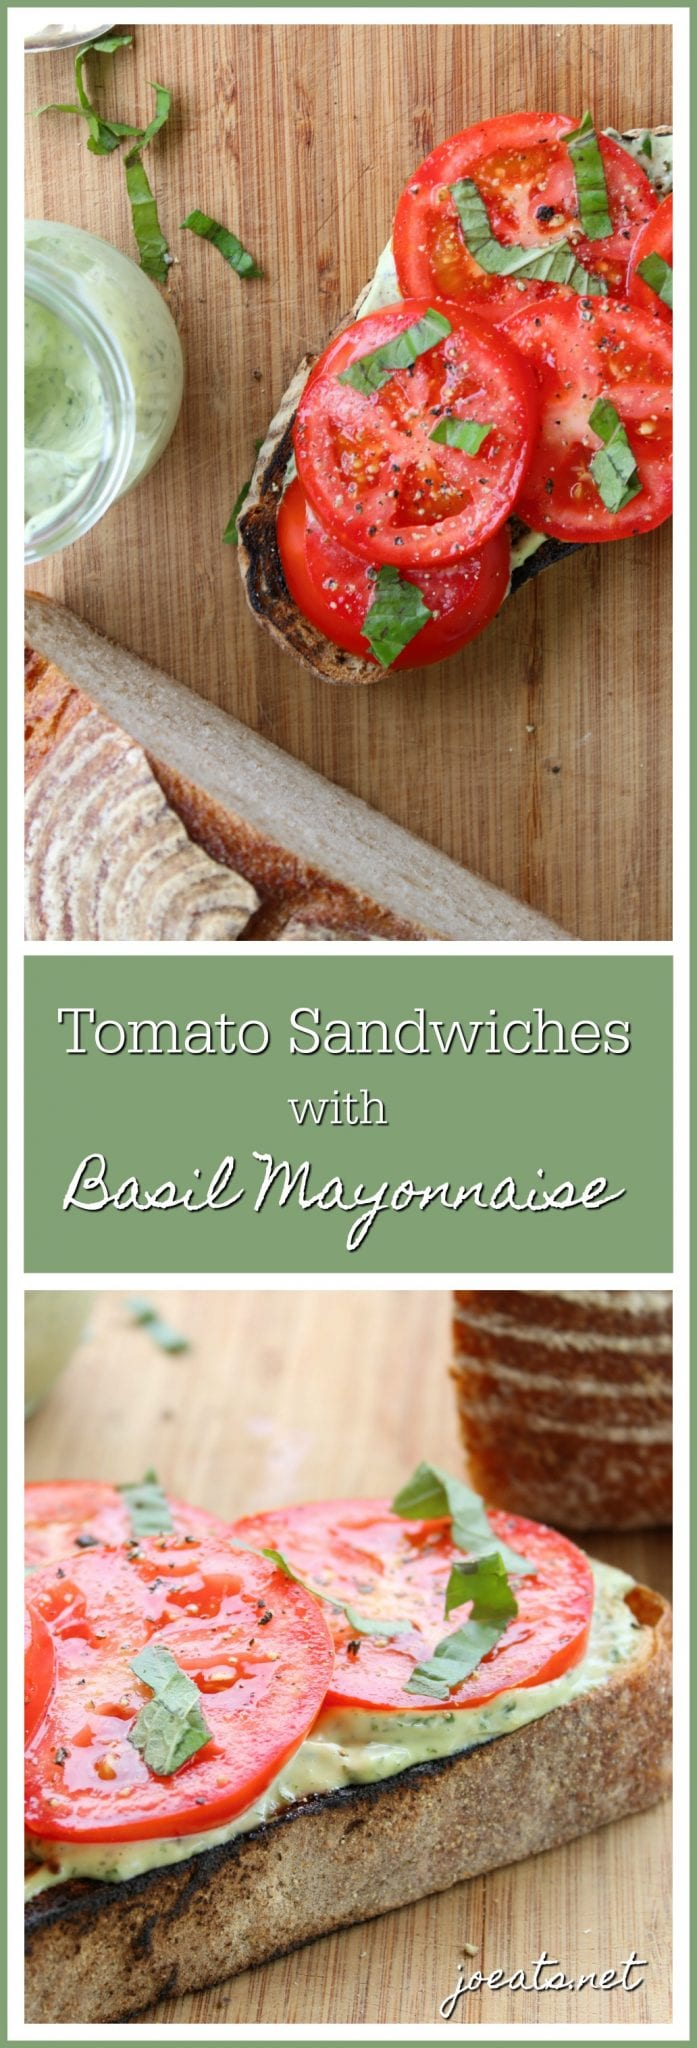 Excellent summer tomatoes don't need much. Slather some zippy basil mayo on toasty bread, pile on juicy tomatoes, and experience some summer magic. #tomato #sandwich #summer #joeats #easy #nocook #vegetarian #tomatosandwich